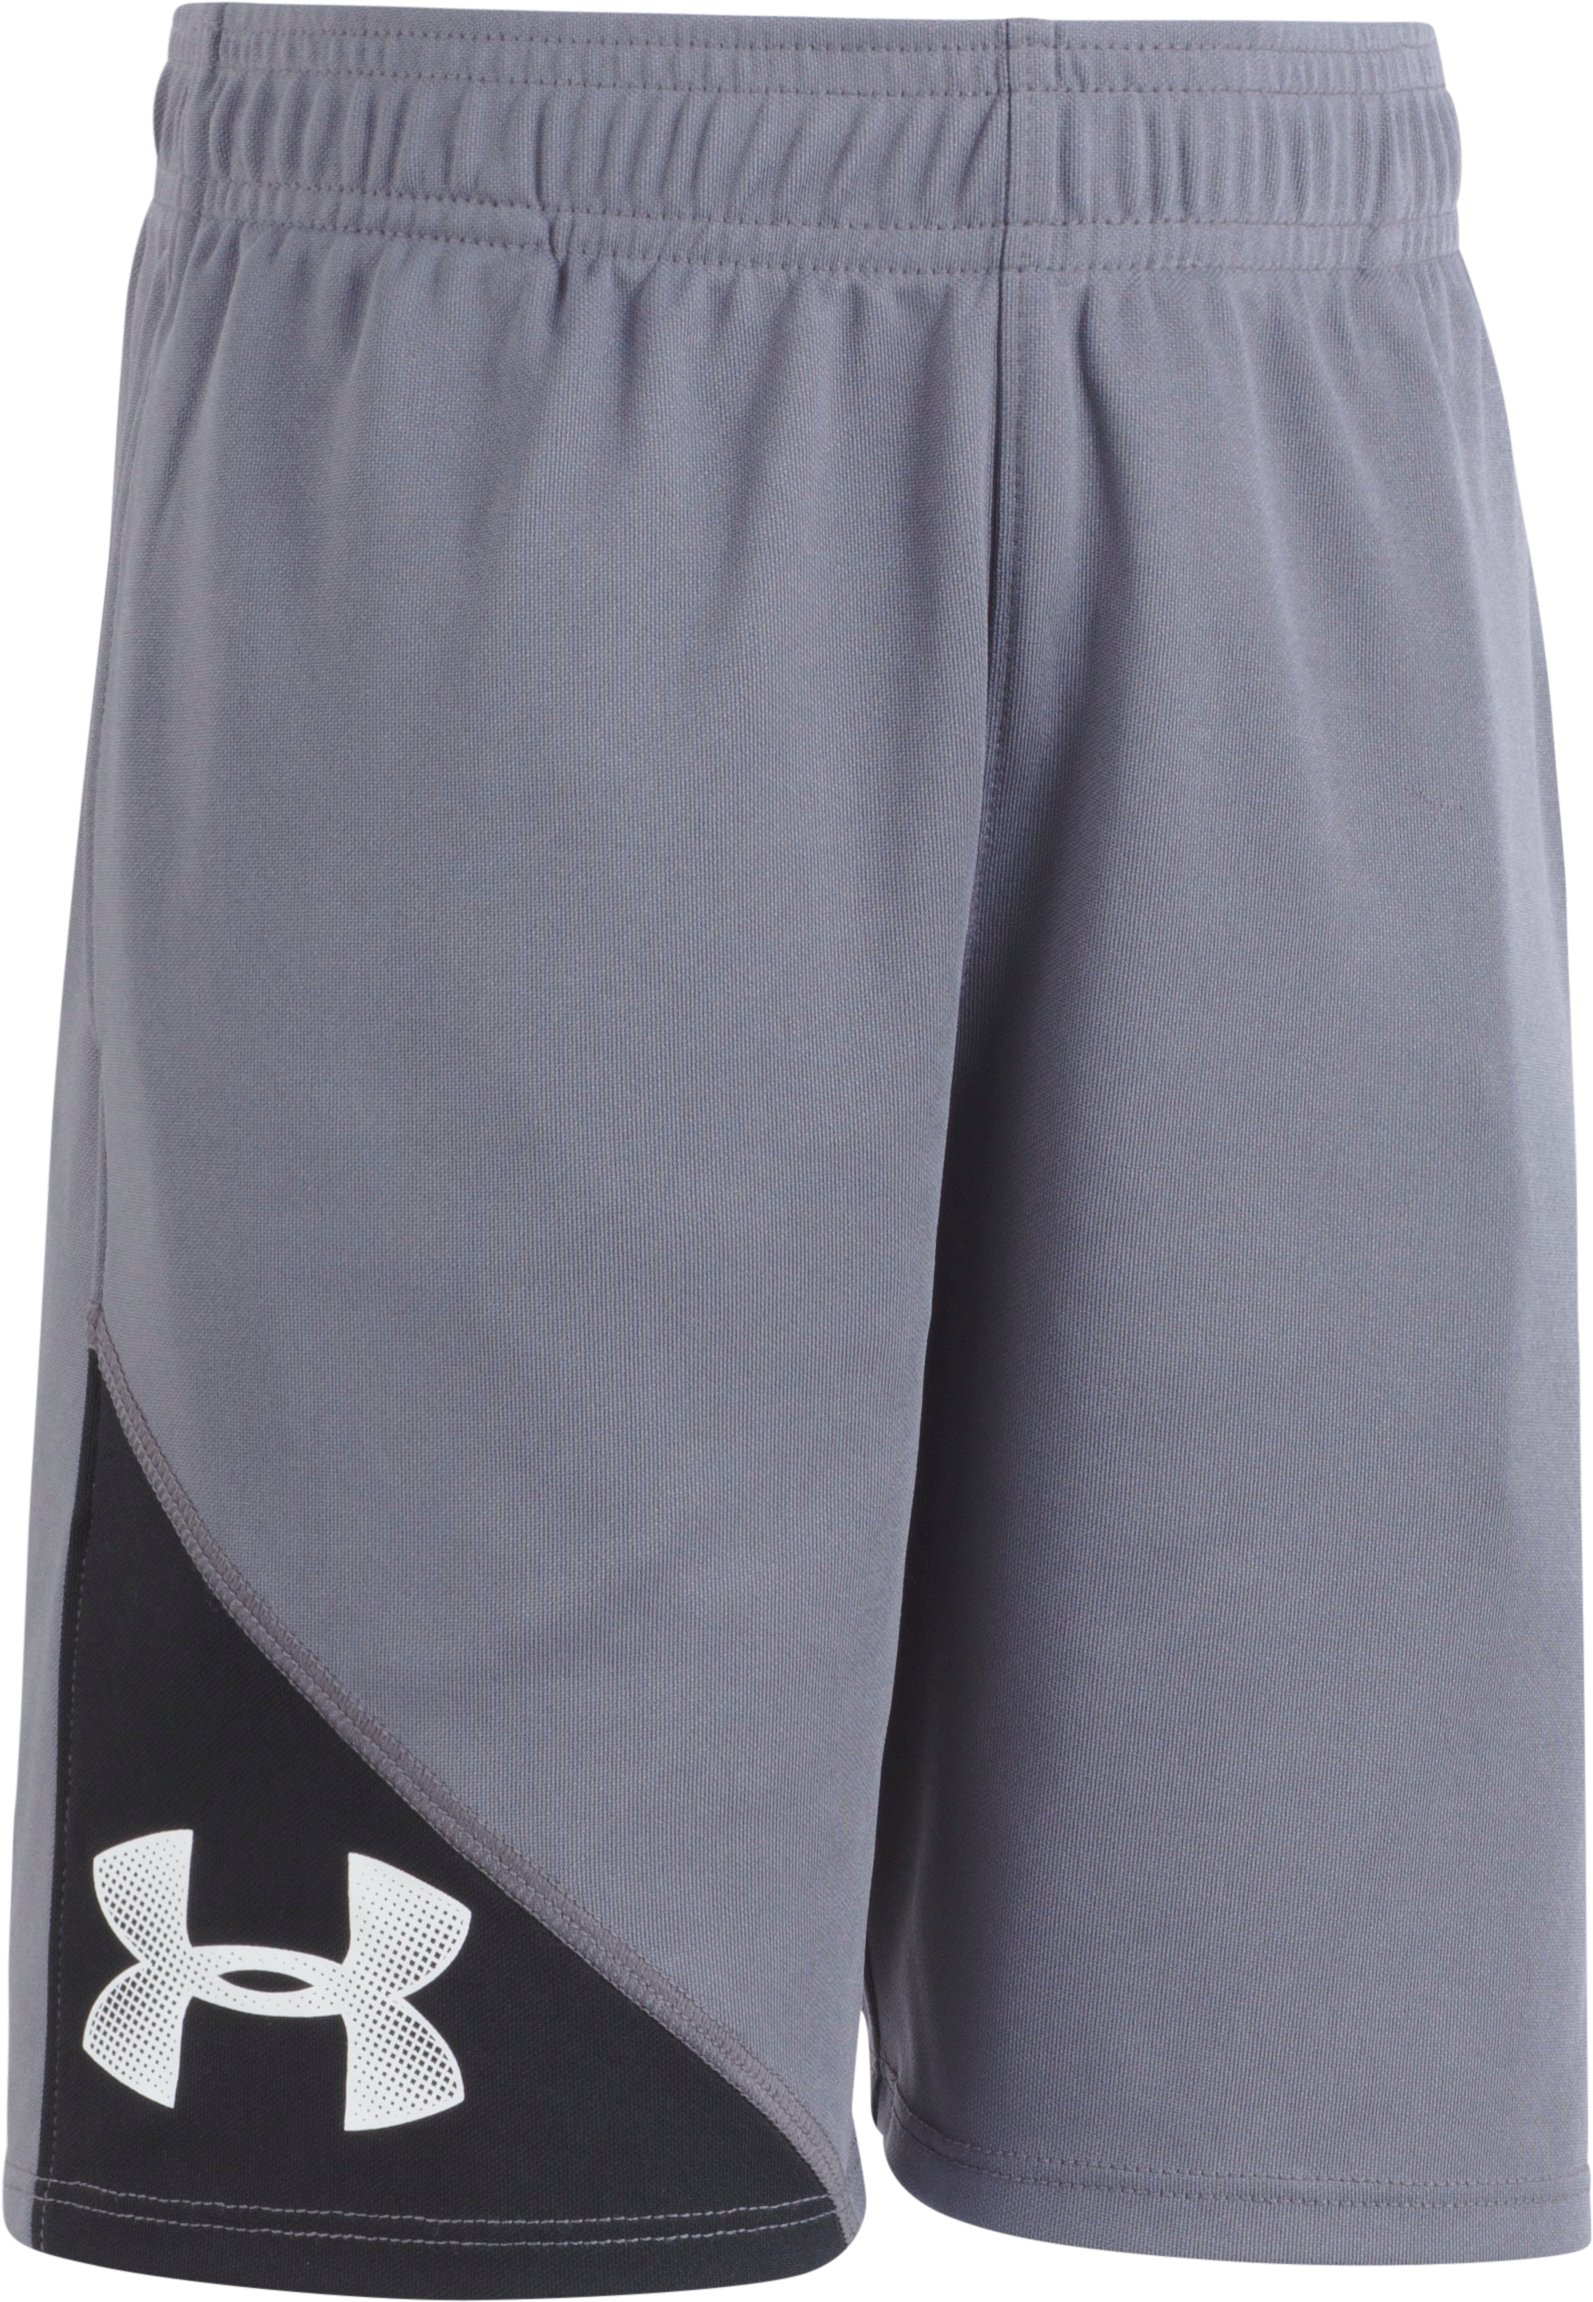 Boys' Pre-School UA Prototype Shorts, Graphite, Laydown